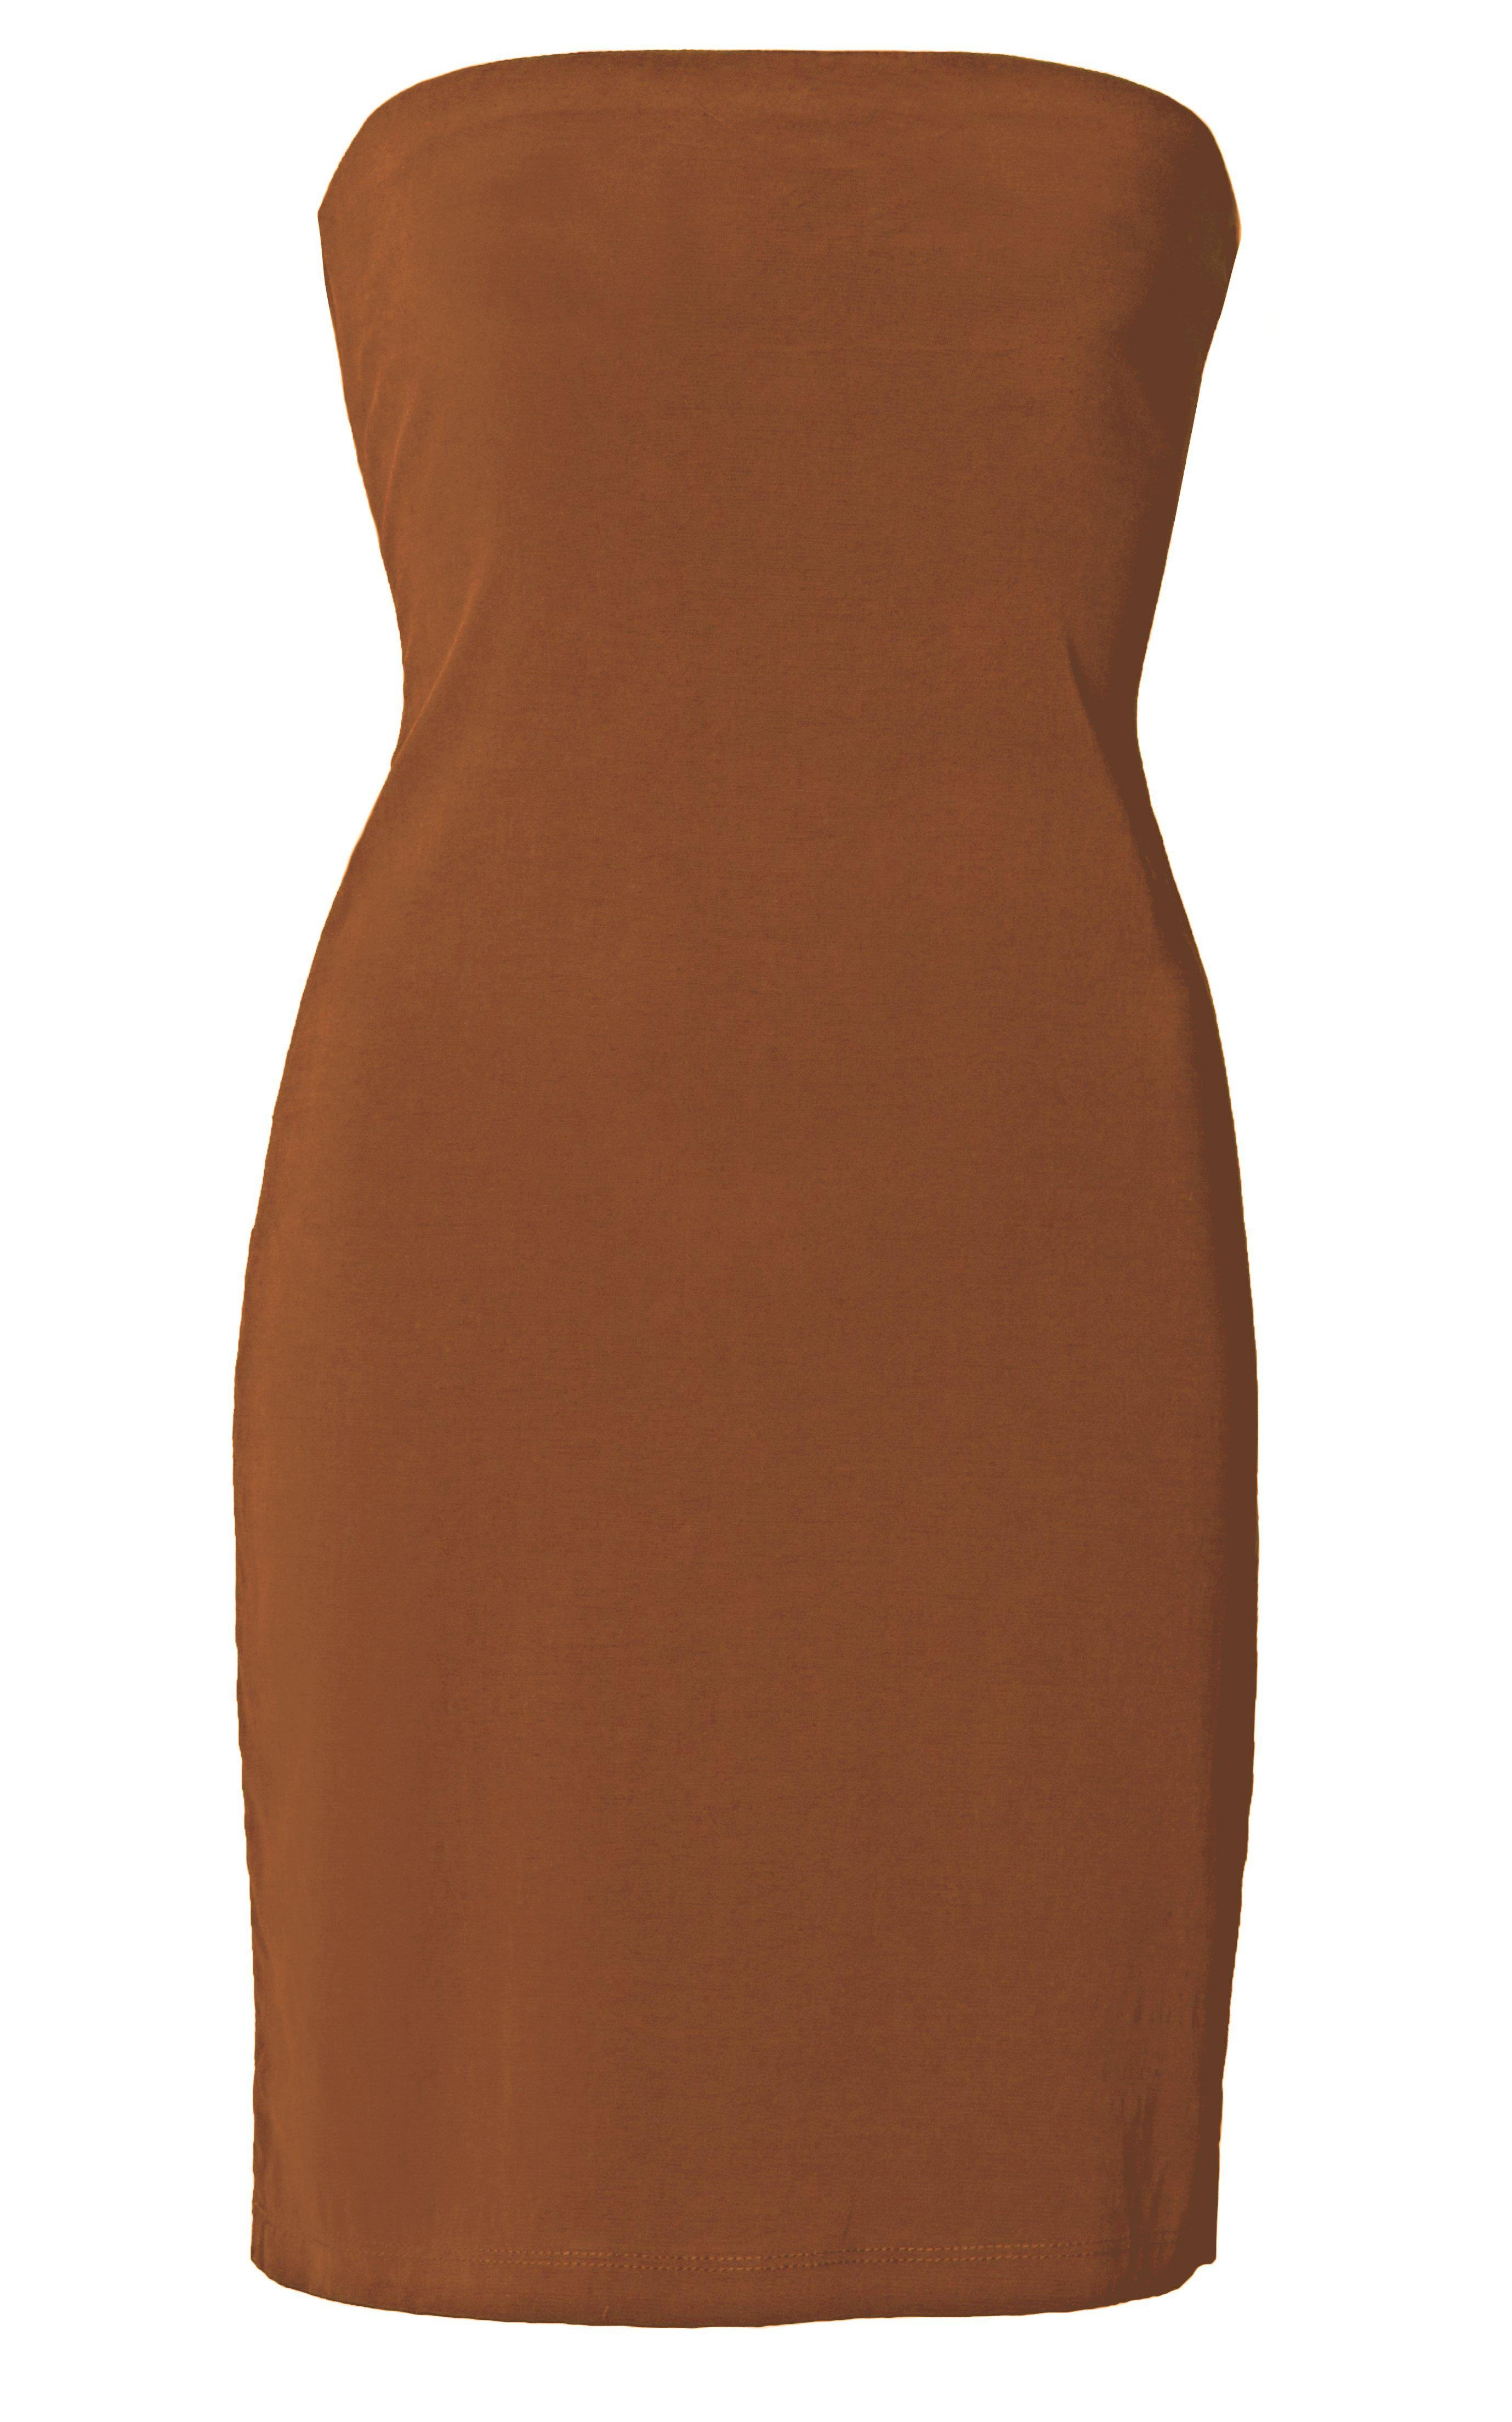 The Ritts Strapless Dress in Stretch Cupro